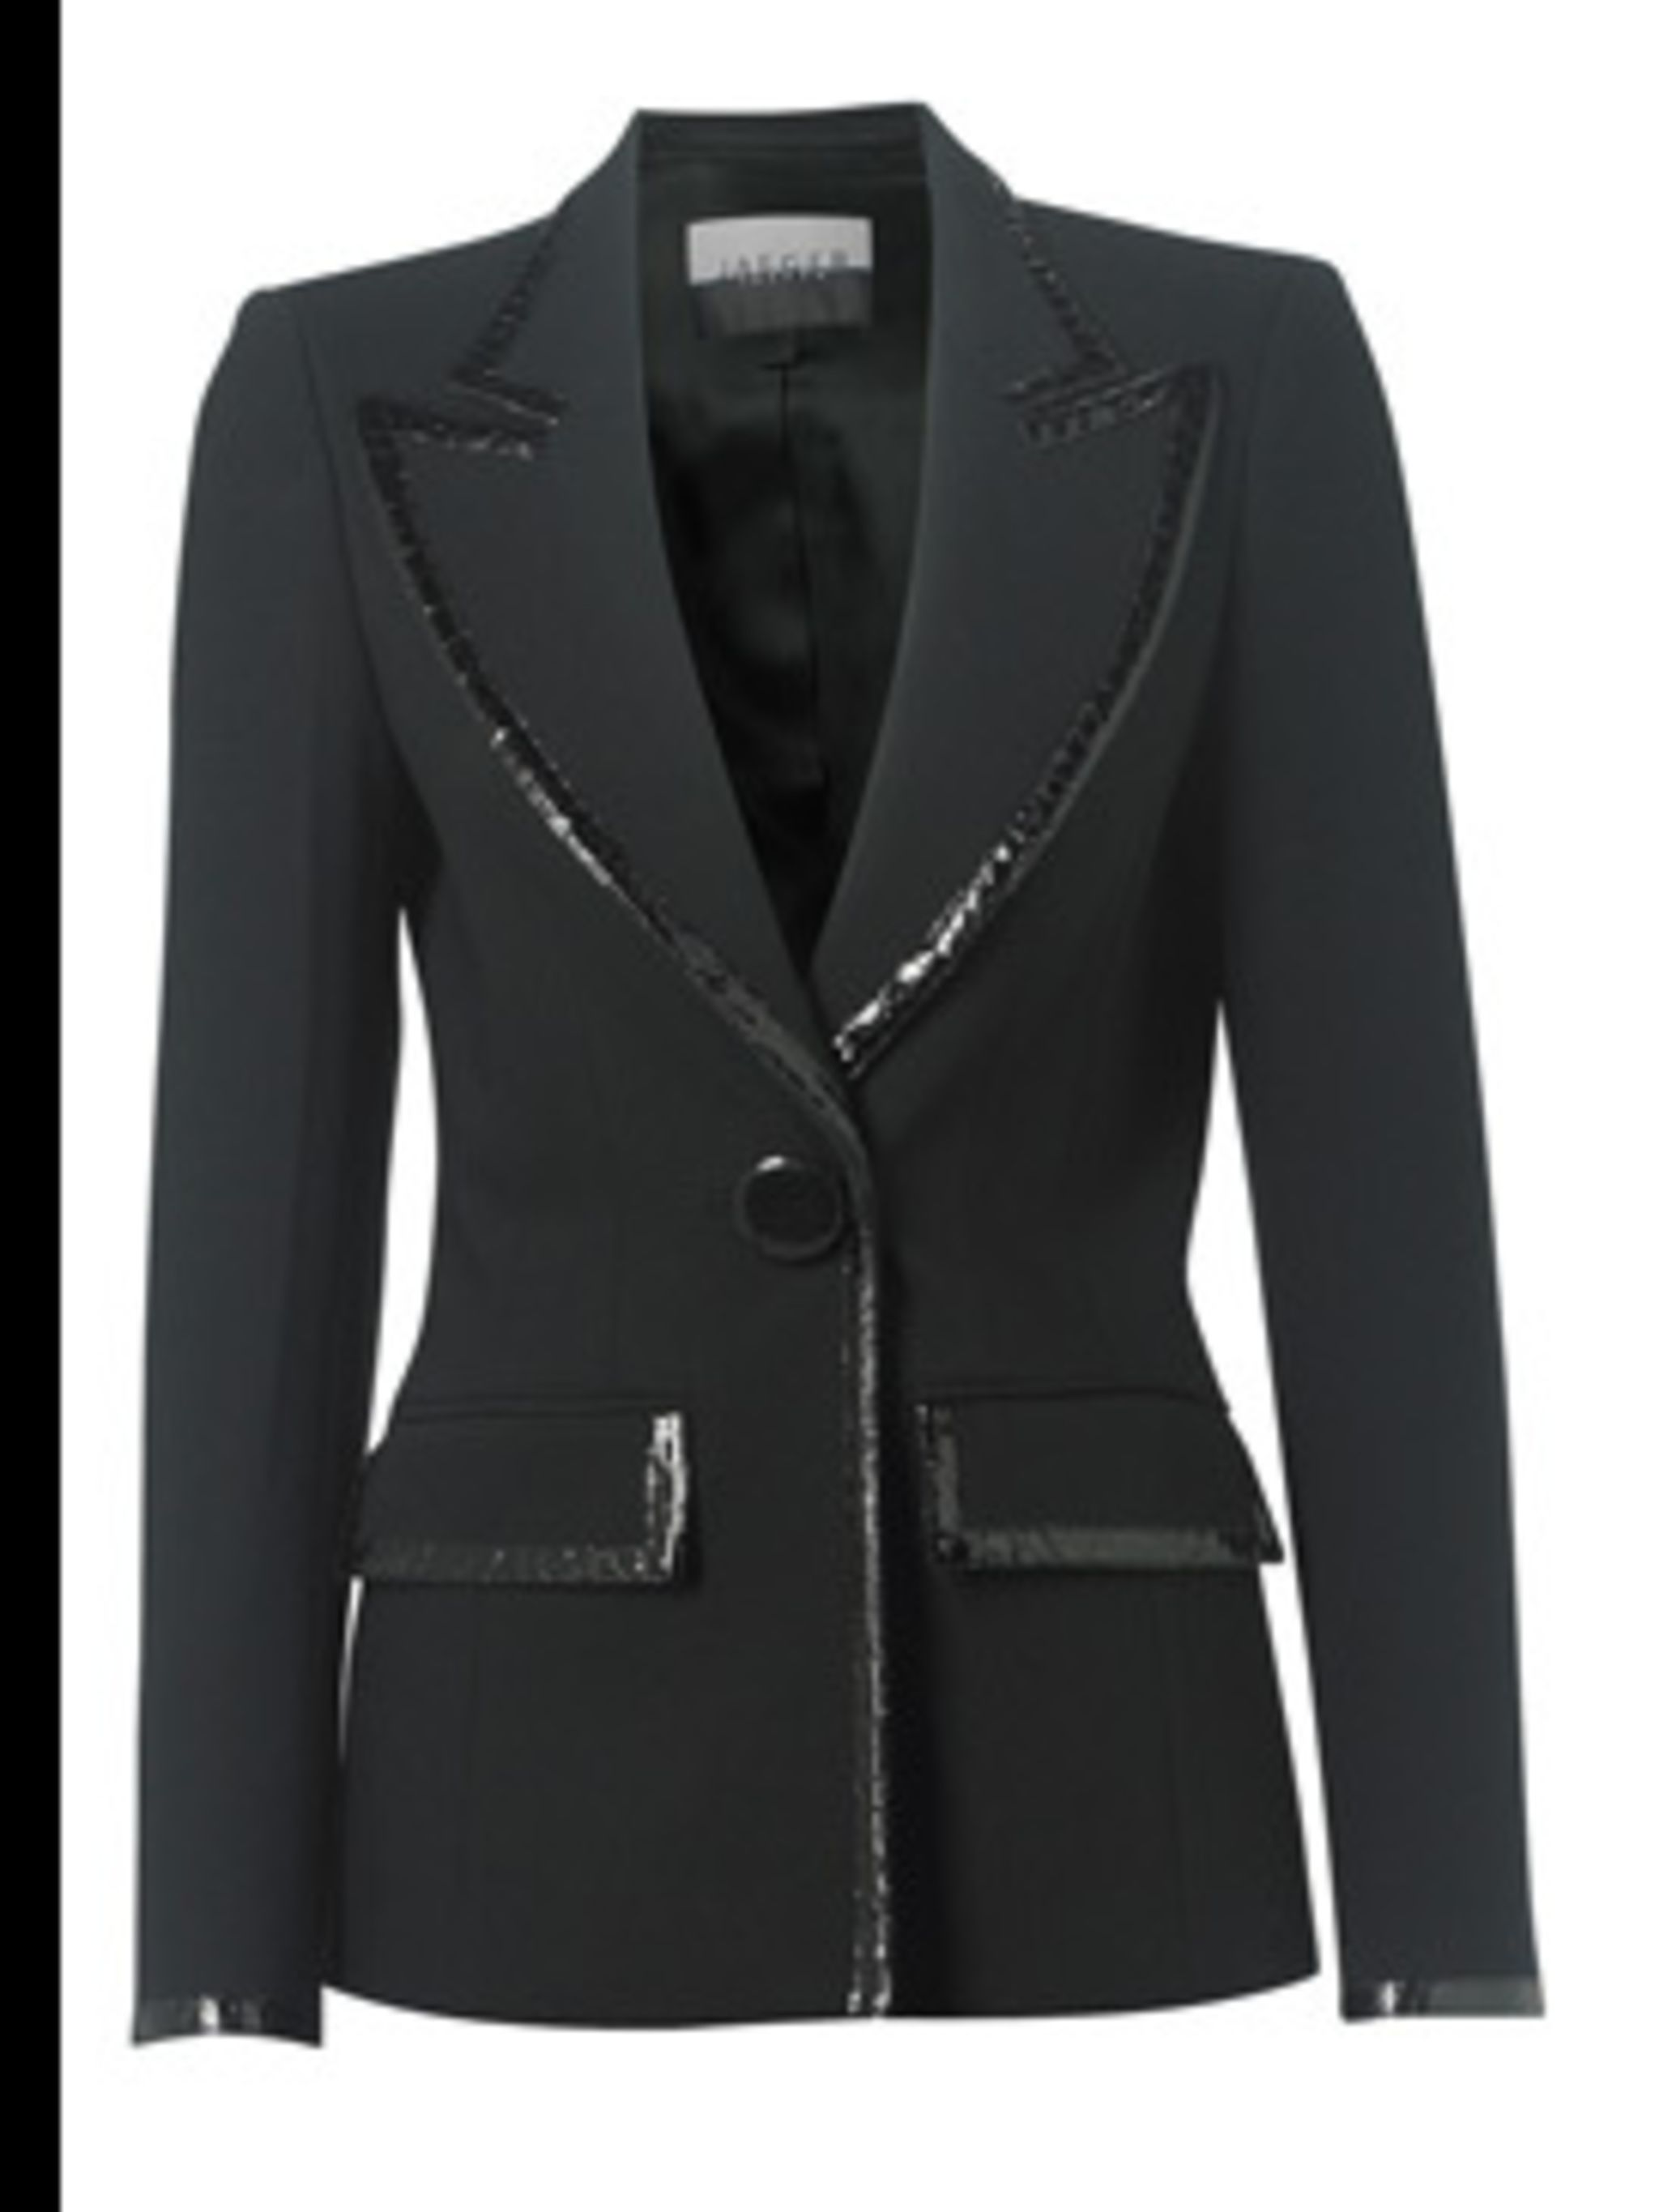 """<p>Blazer, £299.00 from <a href=""""http://www.jaeger.co.uk/index.cfm?page=1094&productid=660021N&productvar=660021N-00100-12&refpage=1372"""">Jaeger</a></p>"""